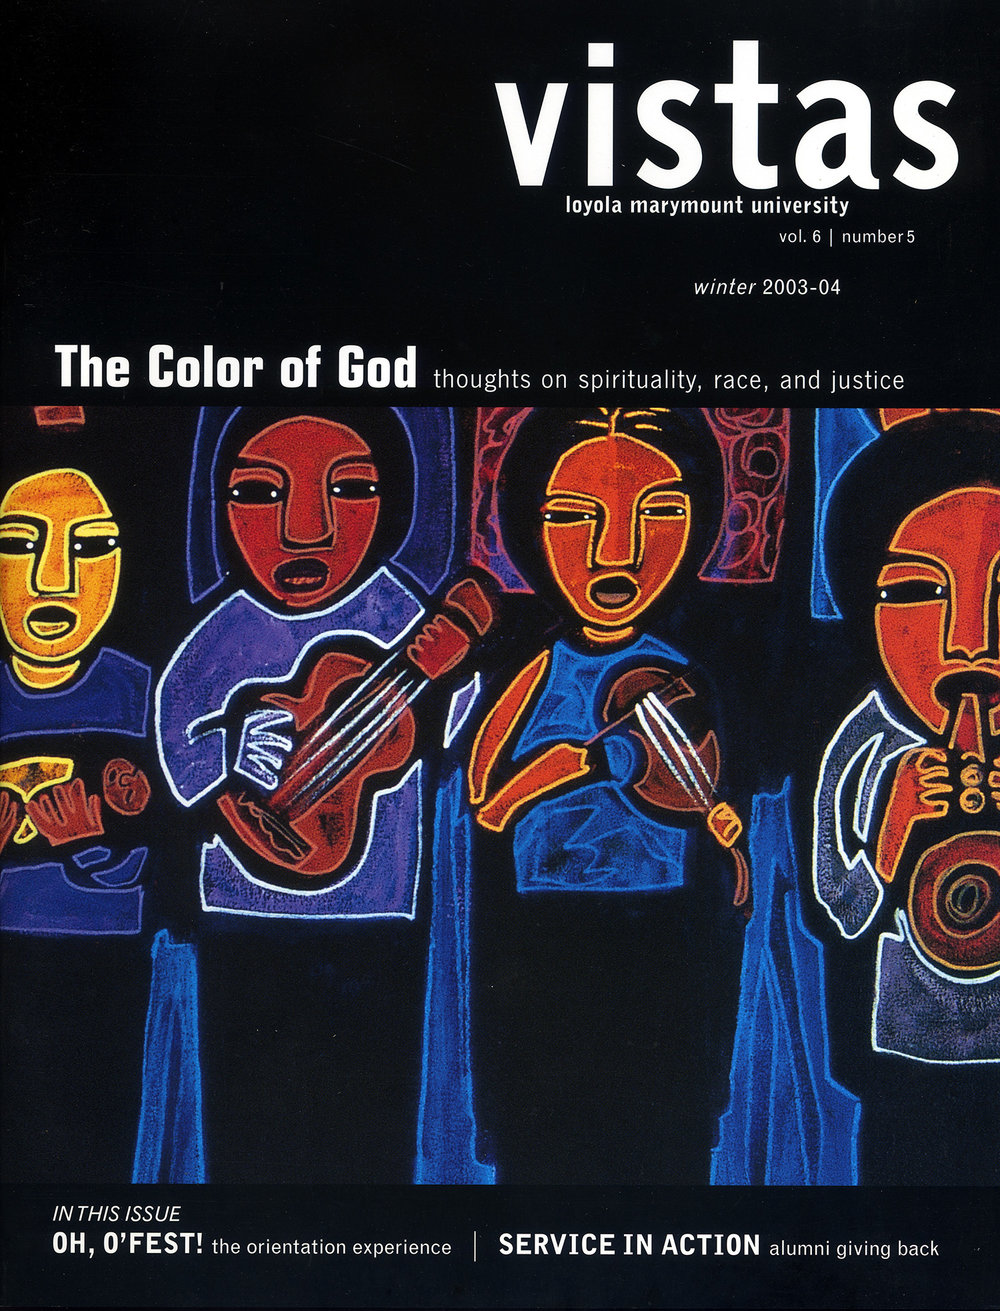 Cover Art for Vistas Magazine, LMU, Los Angeles, 2003.